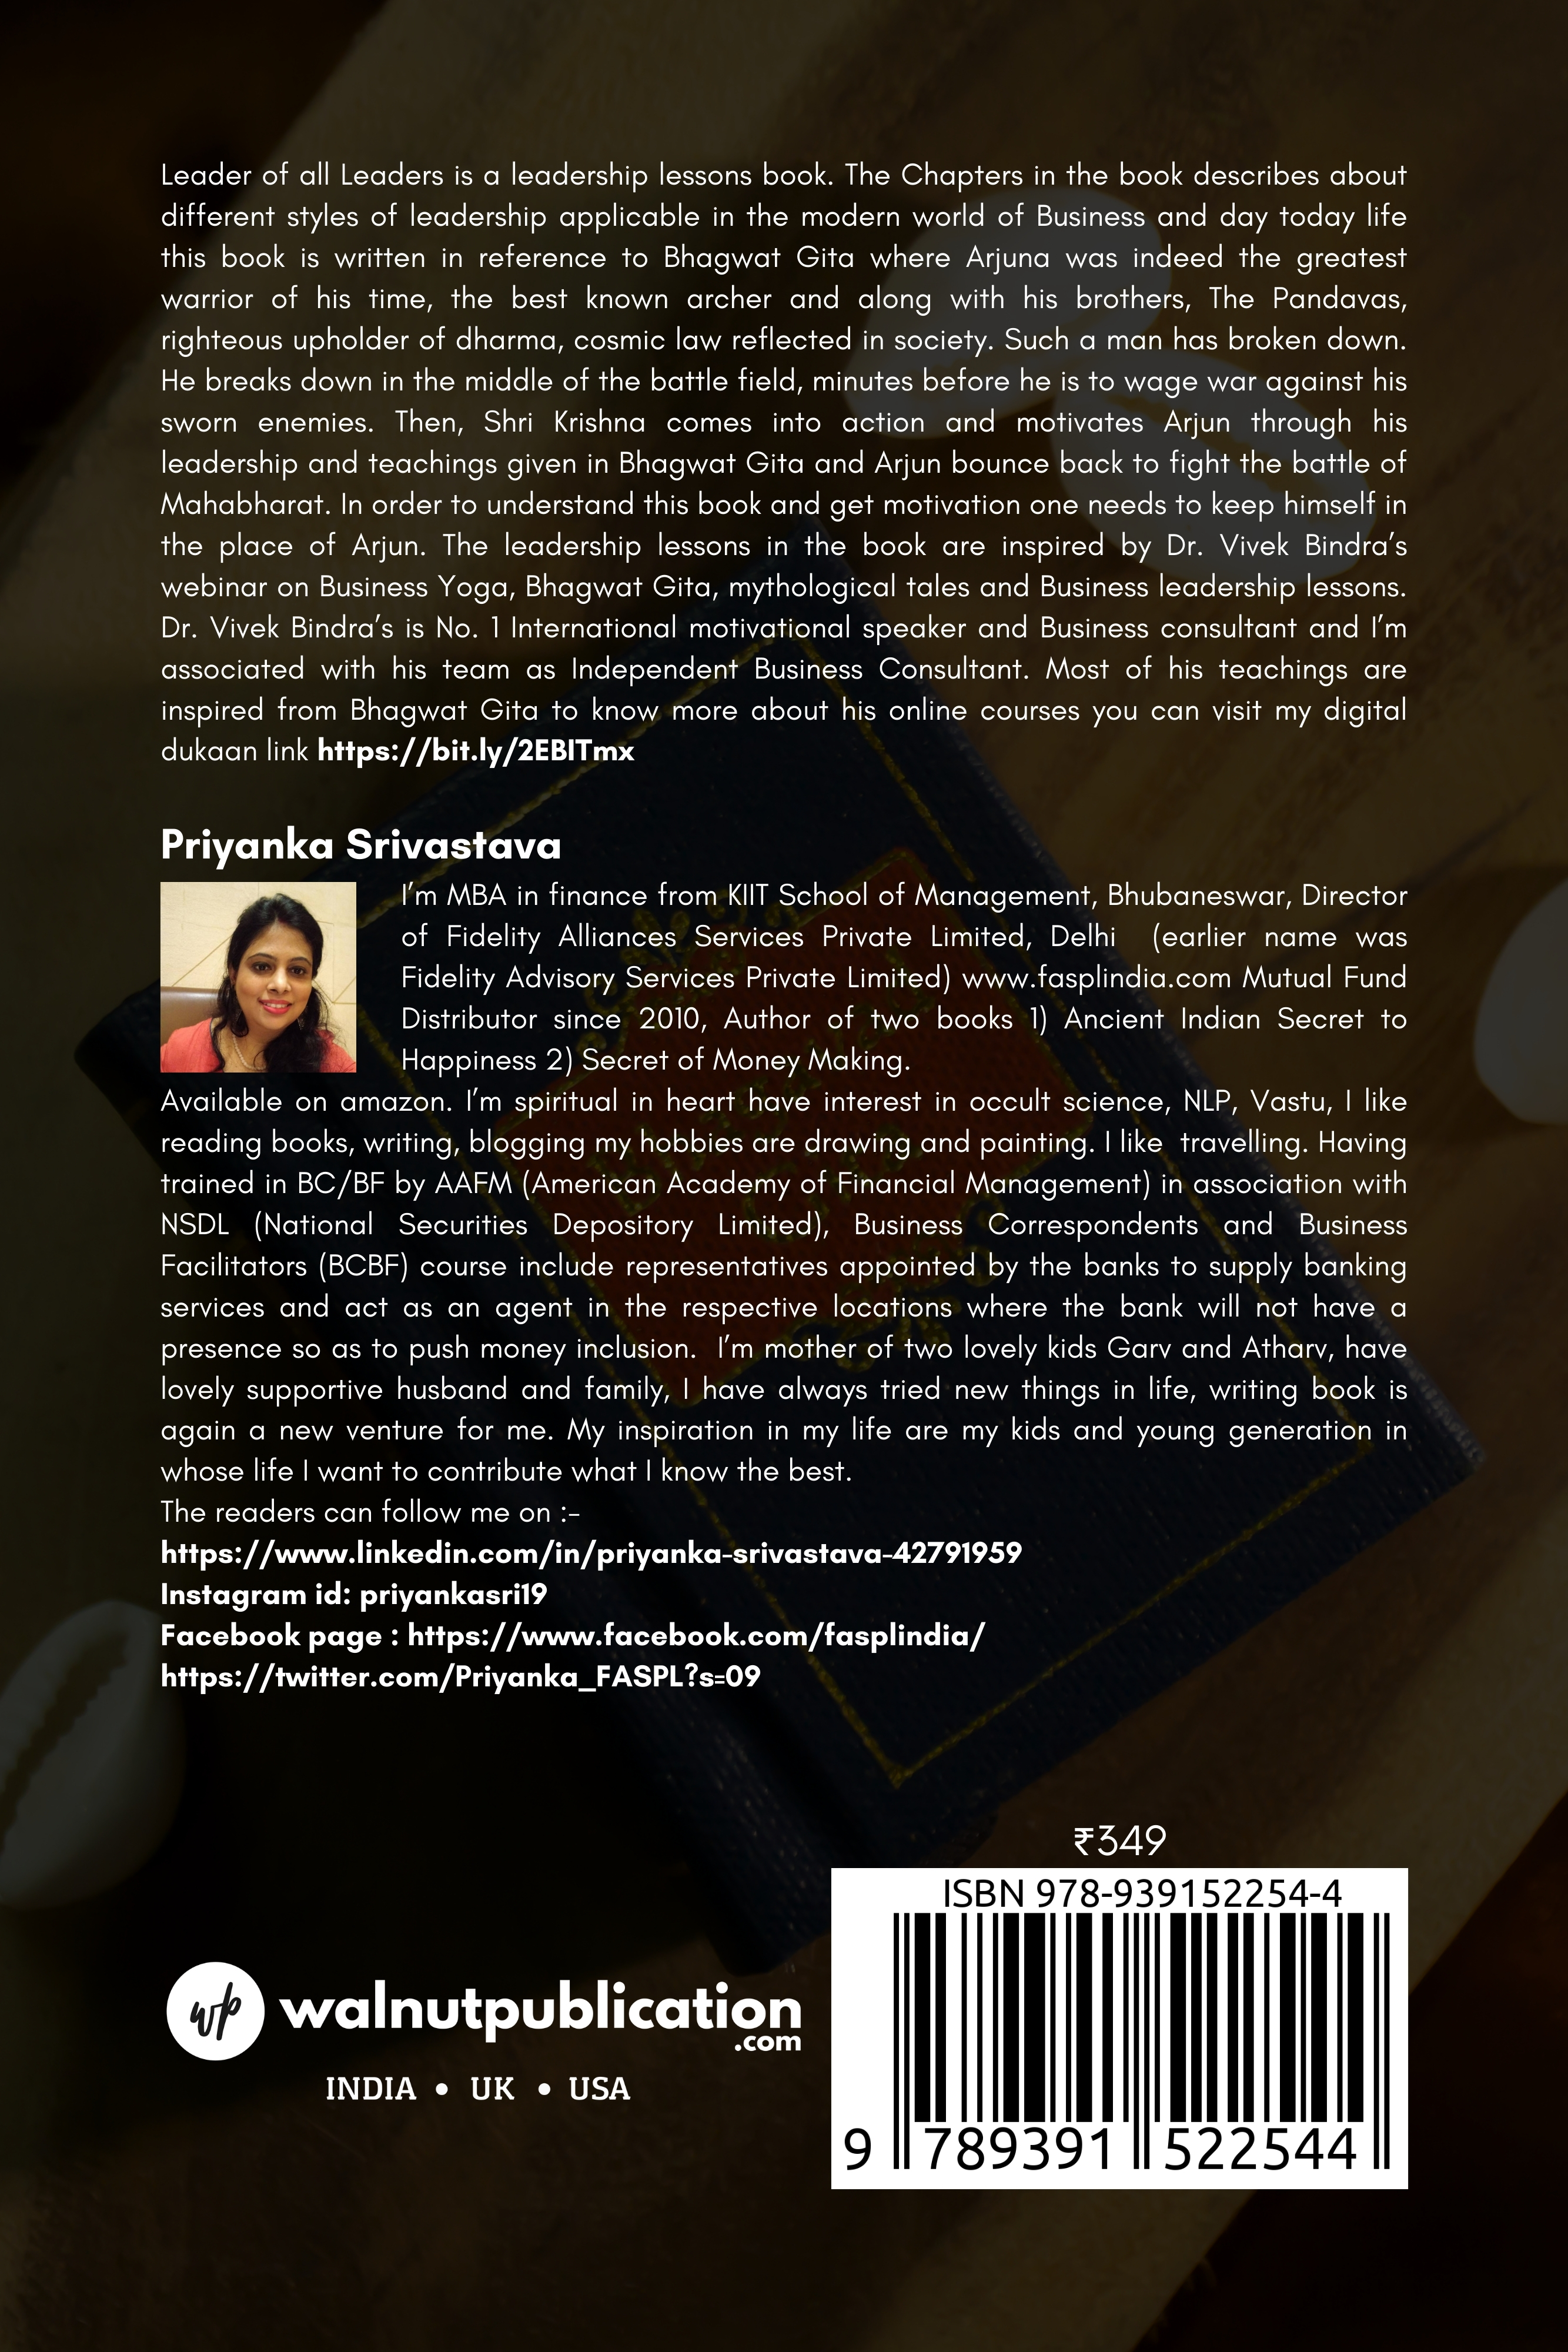 Leader of all Leaders - Inspired by Bhagwat Gita - Back Cover